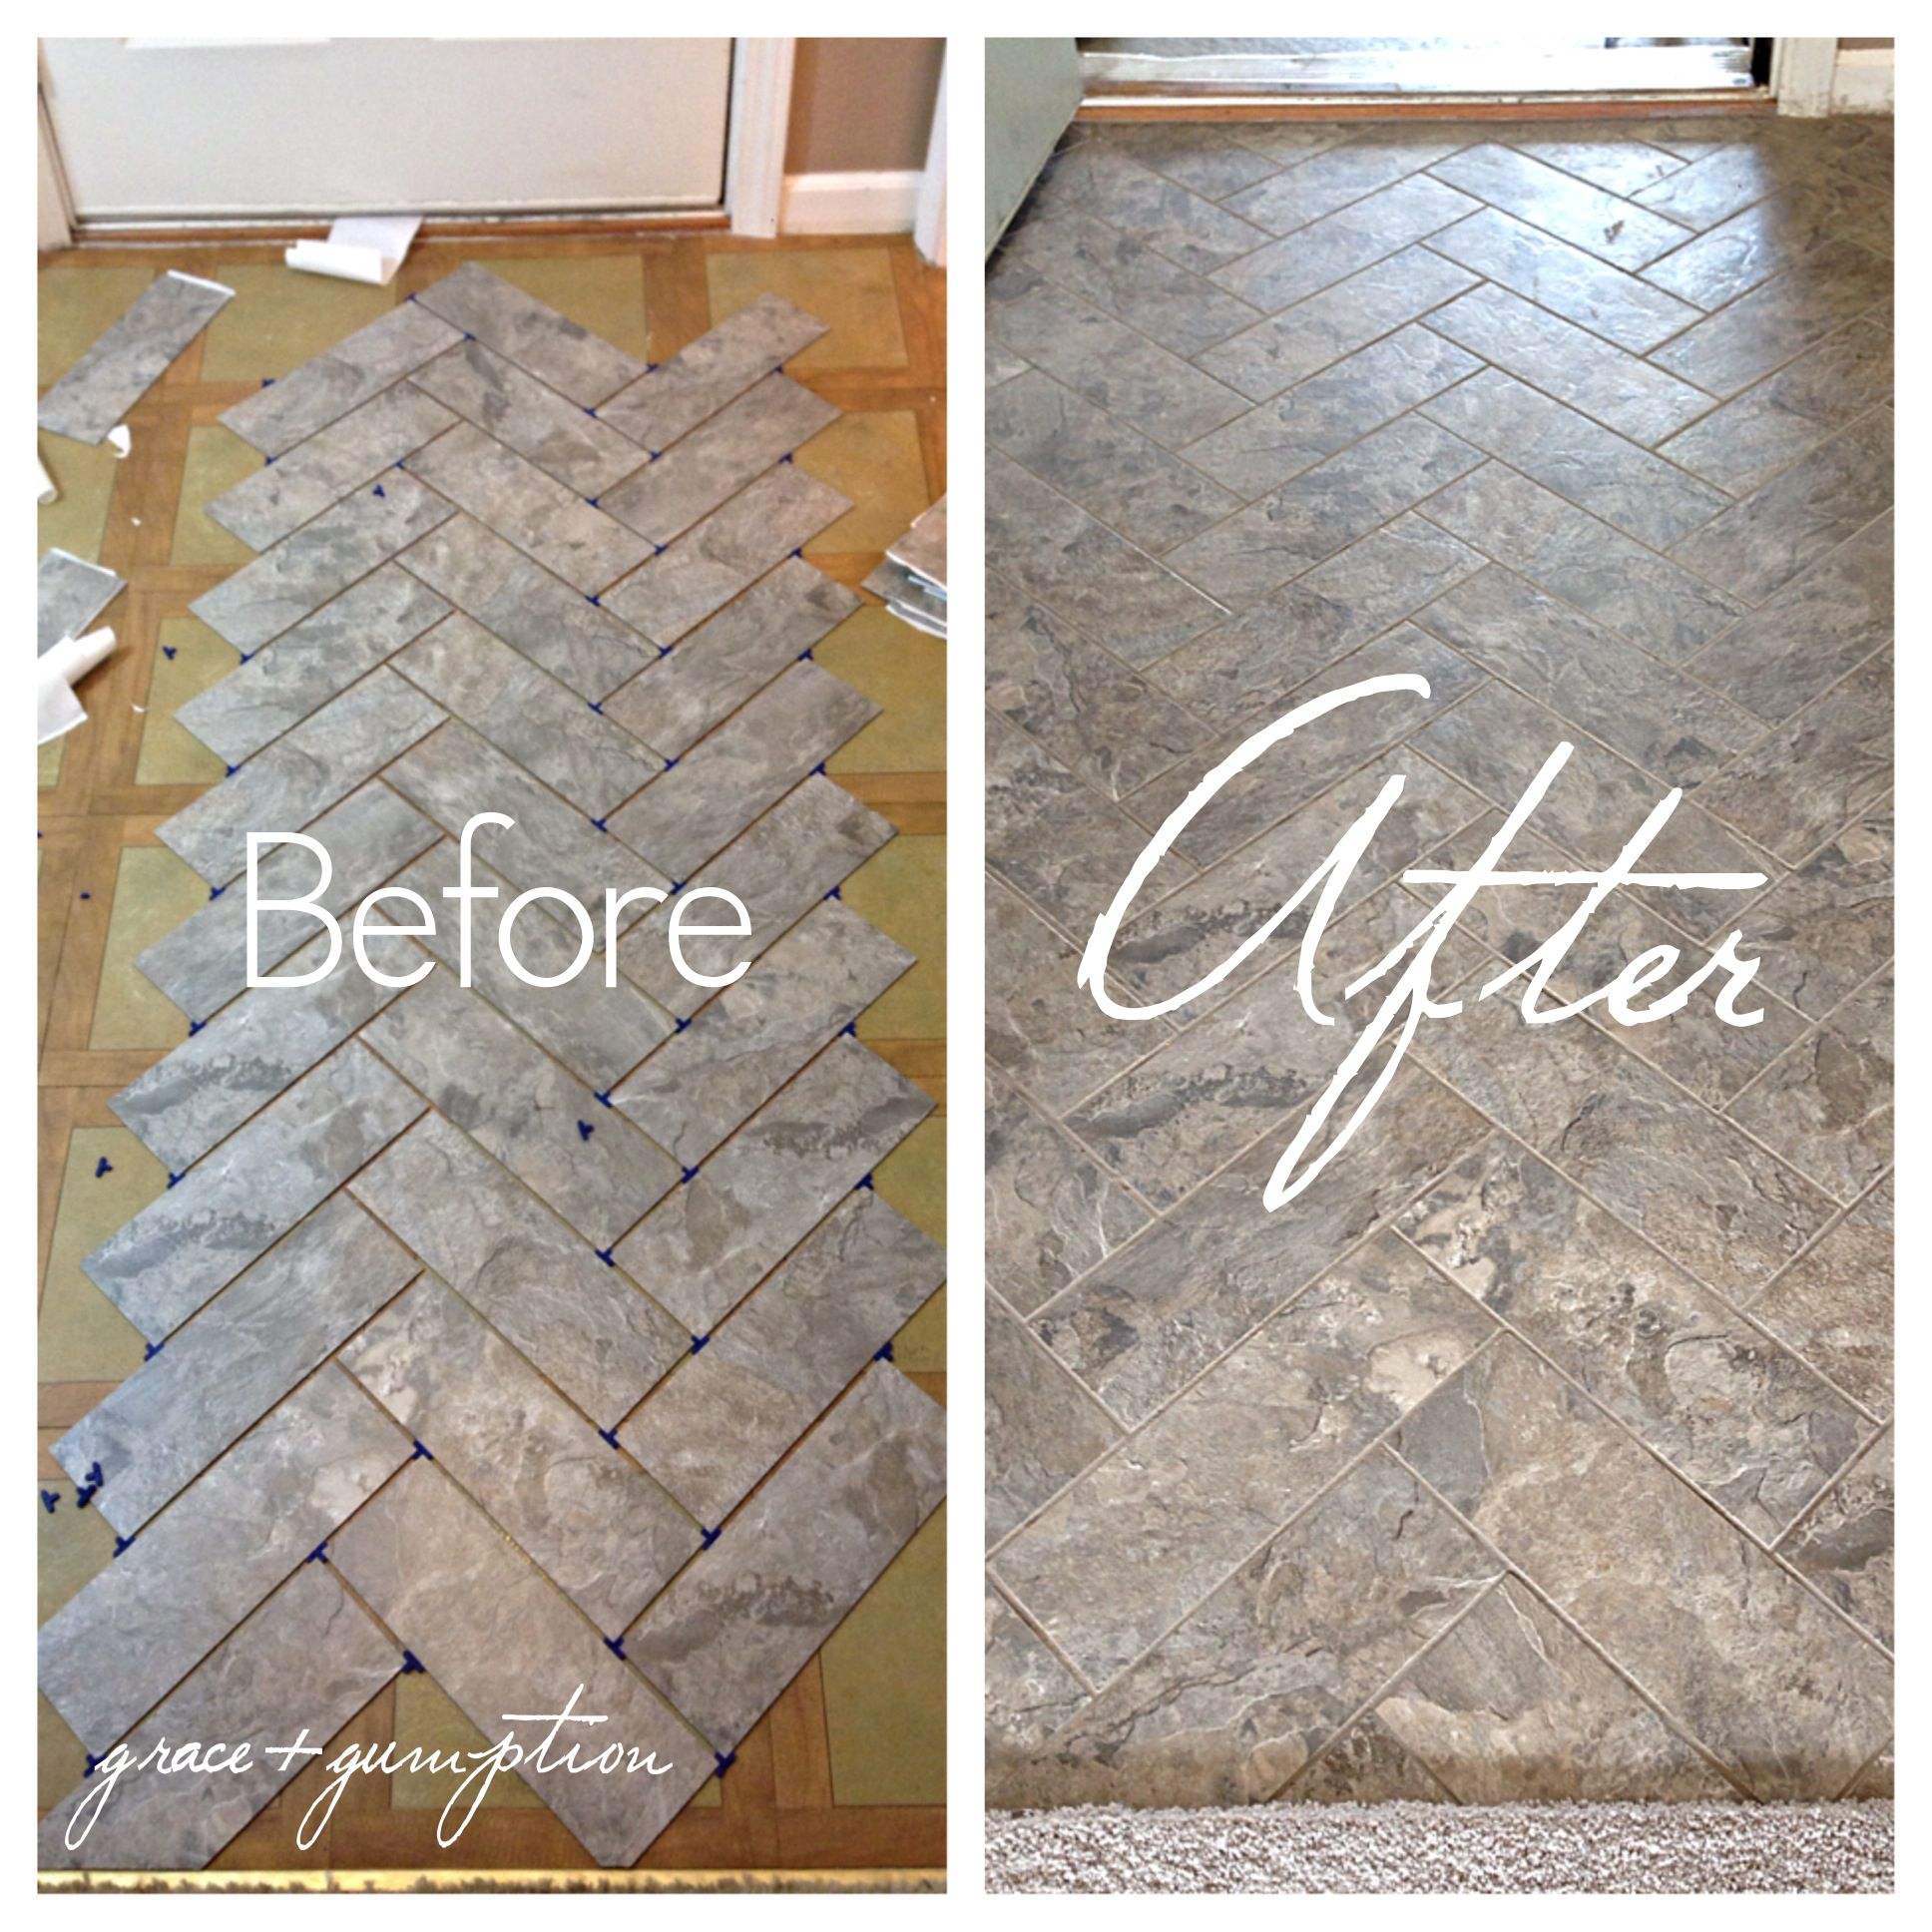 Diy herringbone peel n stick tile floor before and after by grace diy herringbone peel n stick tile floor before and after by grace gumption dailygadgetfo Images